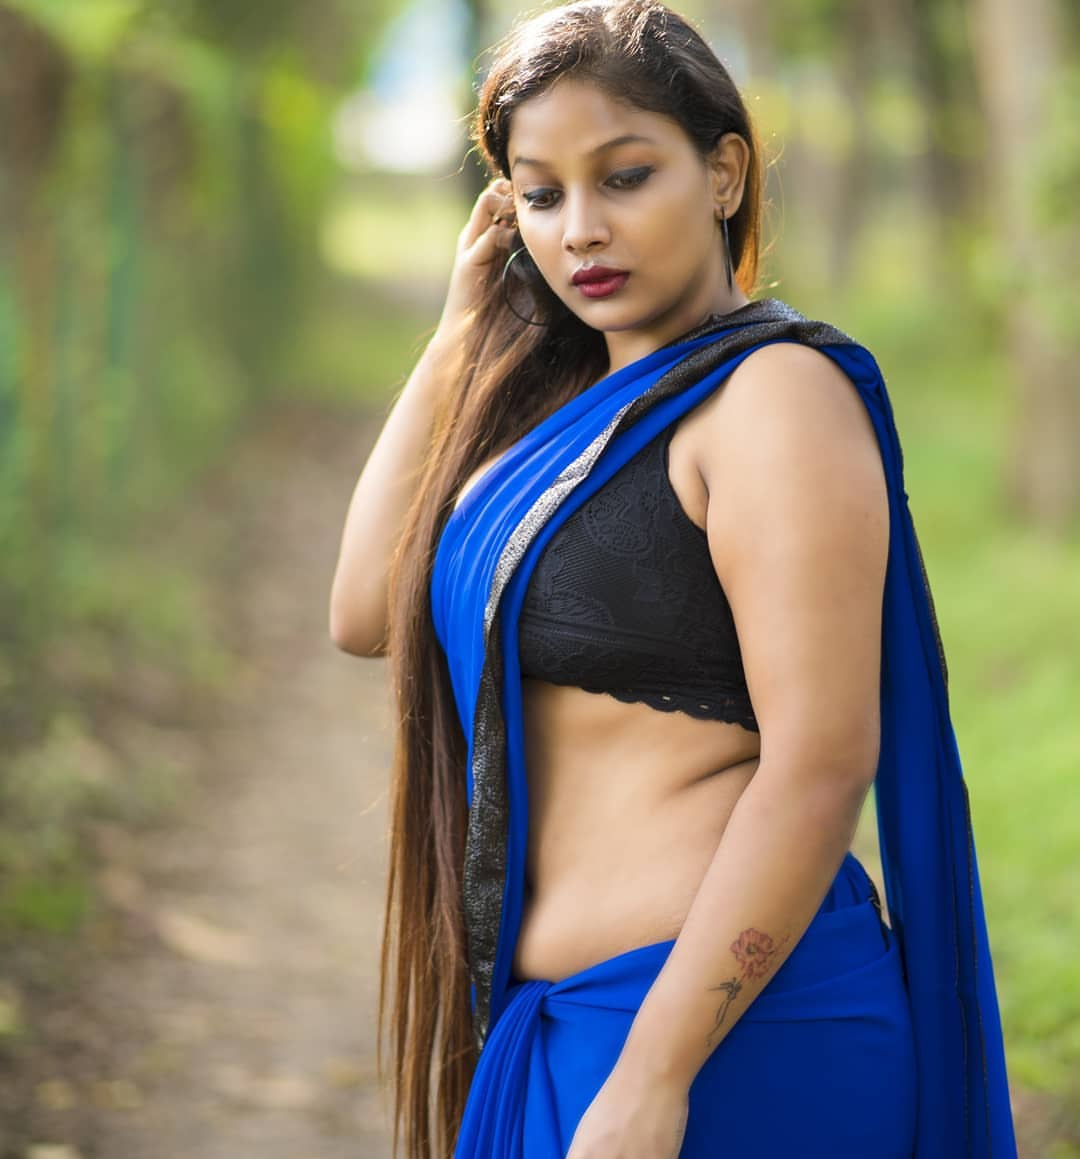 Best Saree Girls Images | Free Desi Girls Photo